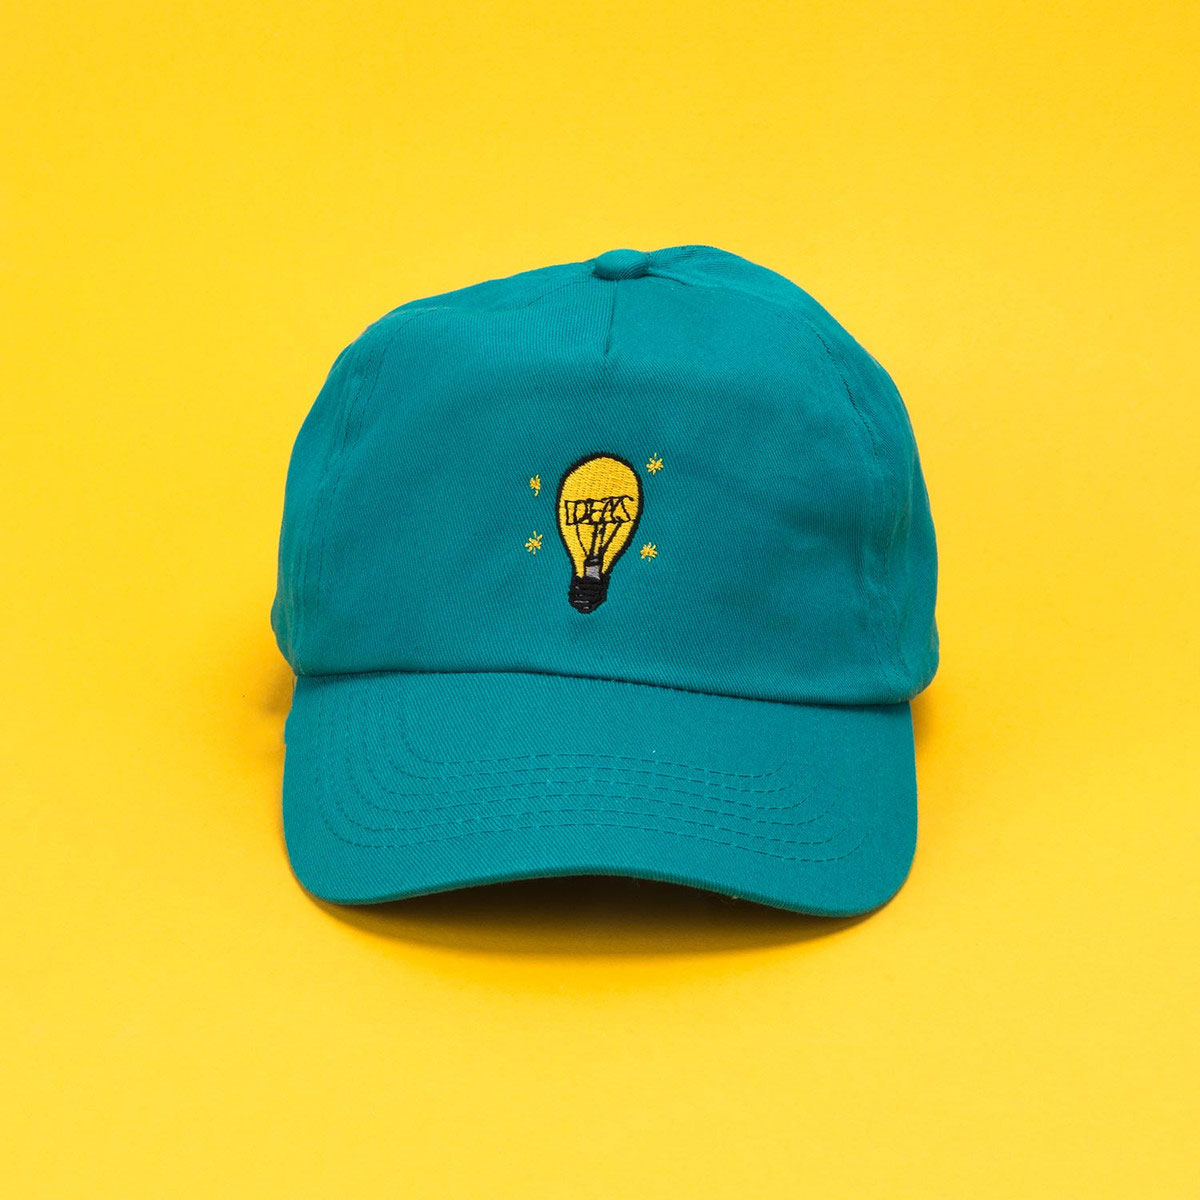 50 x Embroidered Beechfield Original 5 Panel Caps for £295